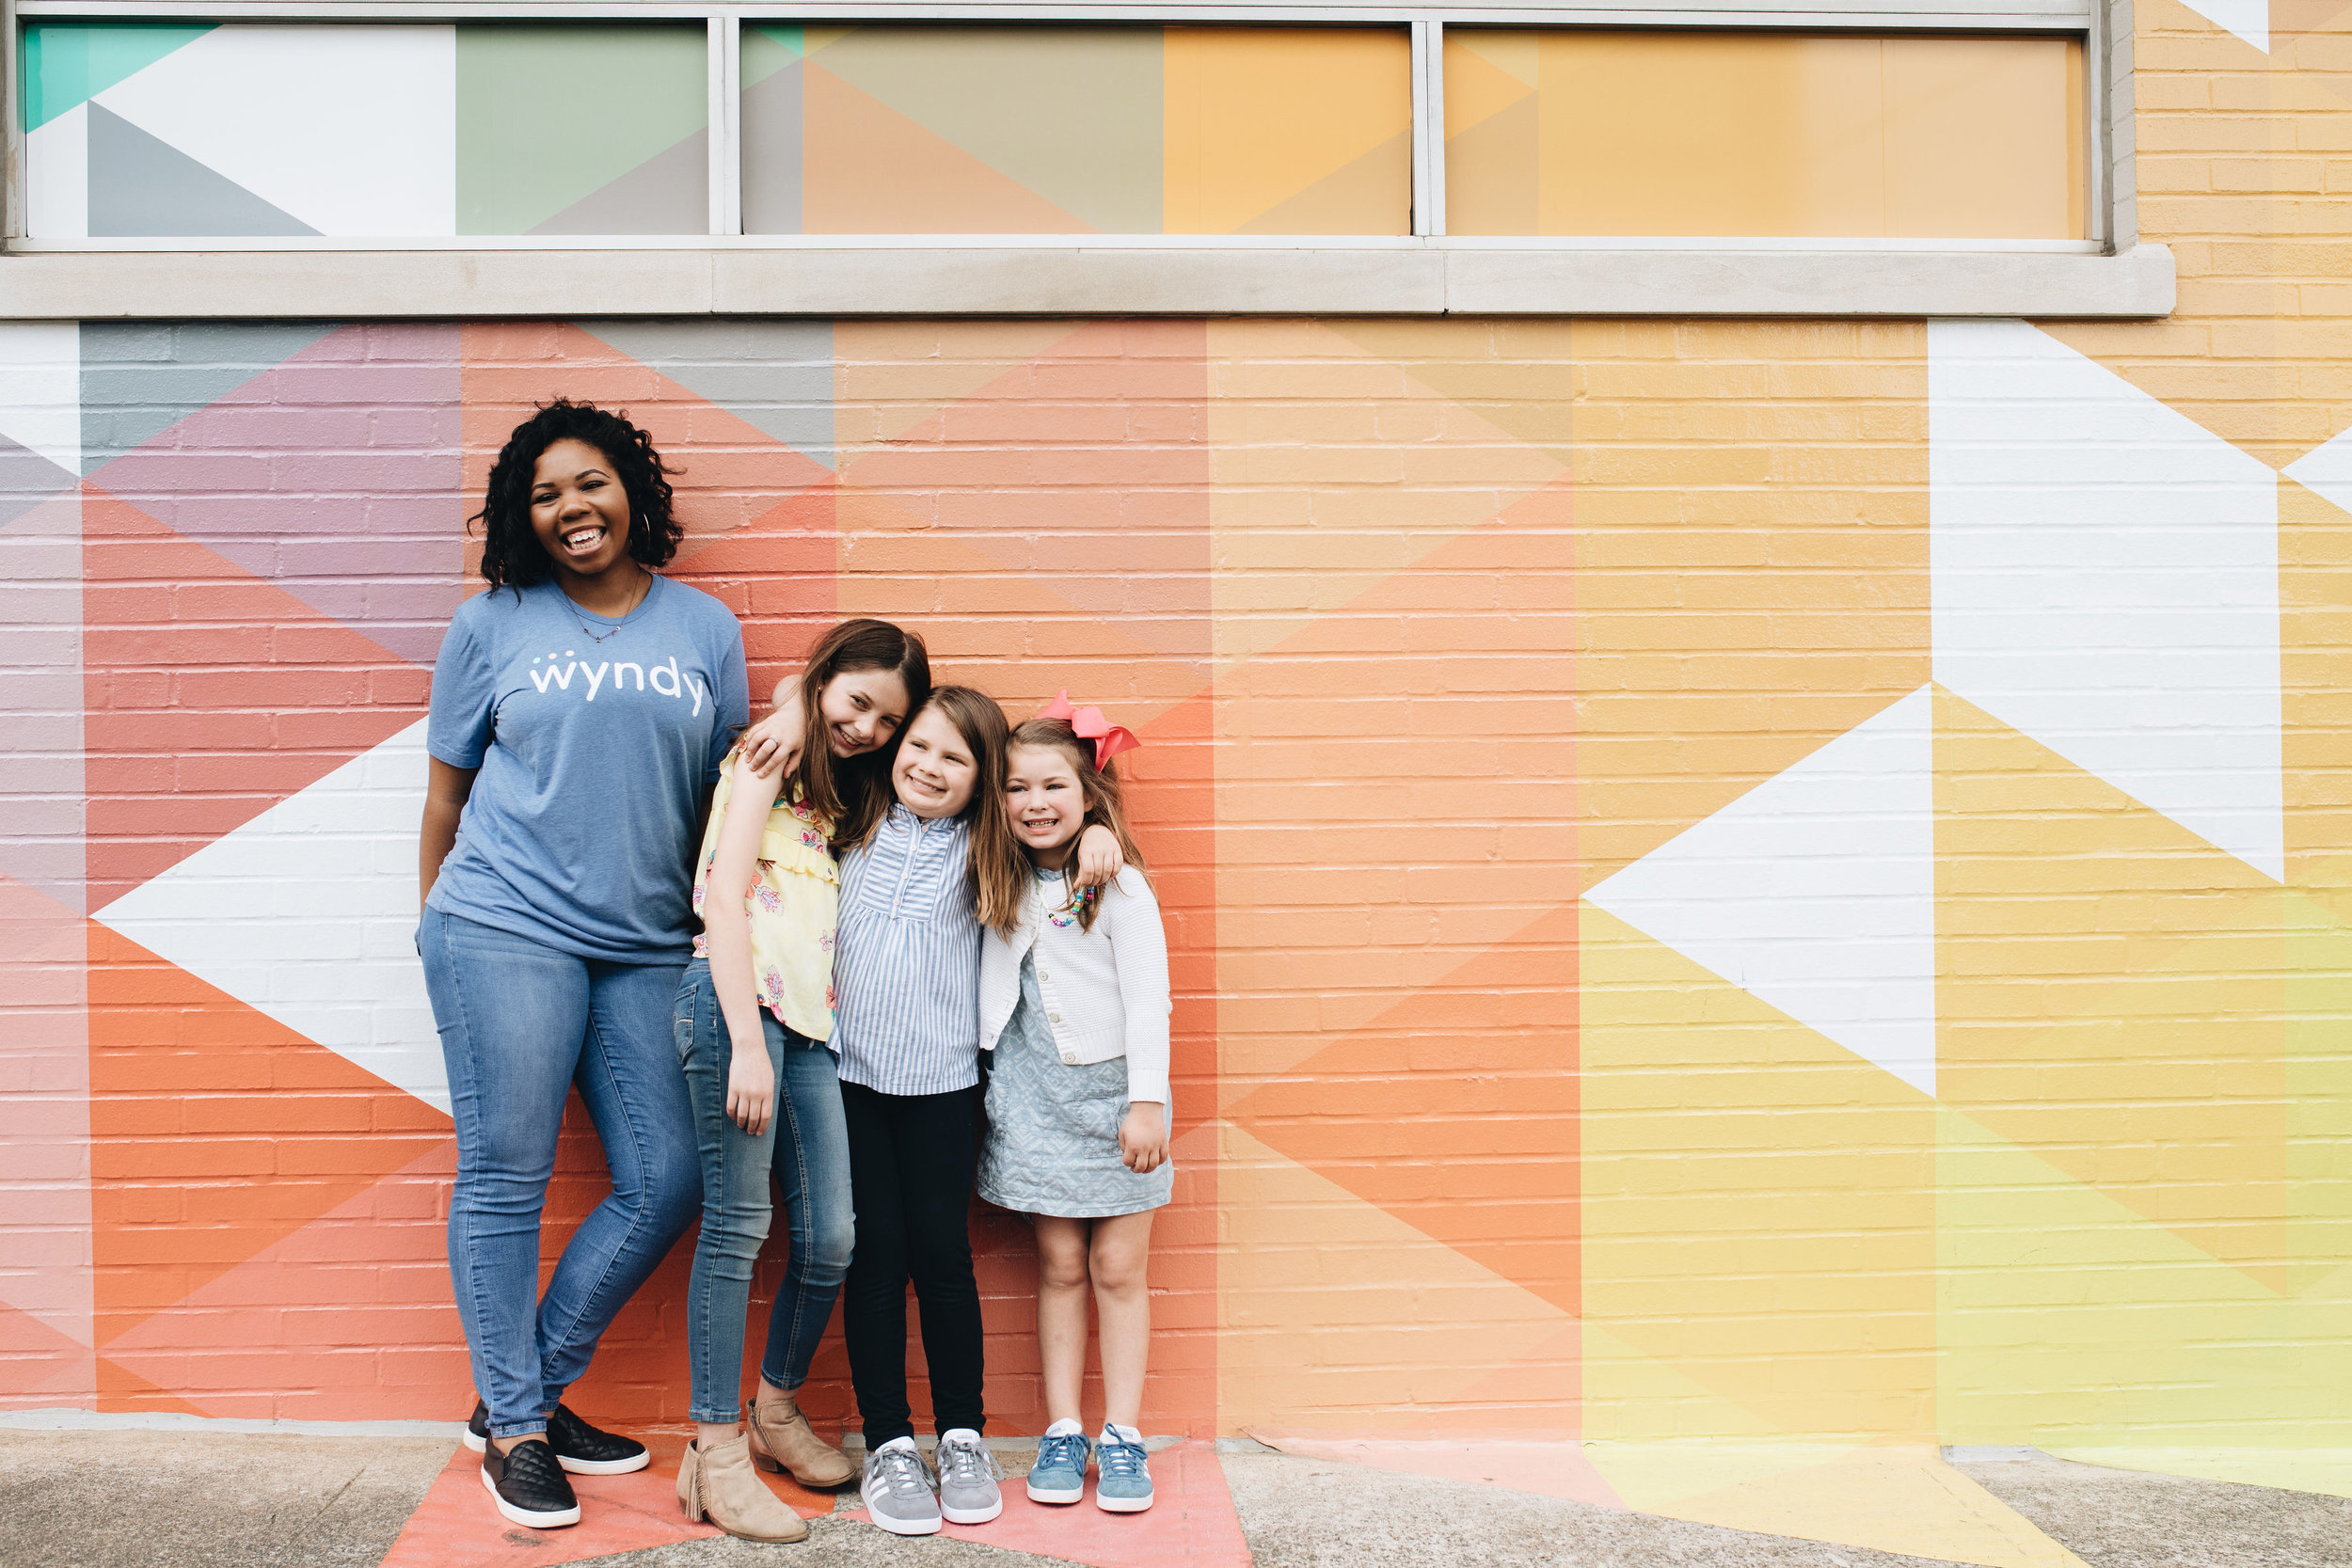 Get $15 off your first Wyndy babysitting job in Atlanta - More than 10,000 families in Atlanta, Nashville, Birmingham, and Memphis trust Wyndy.